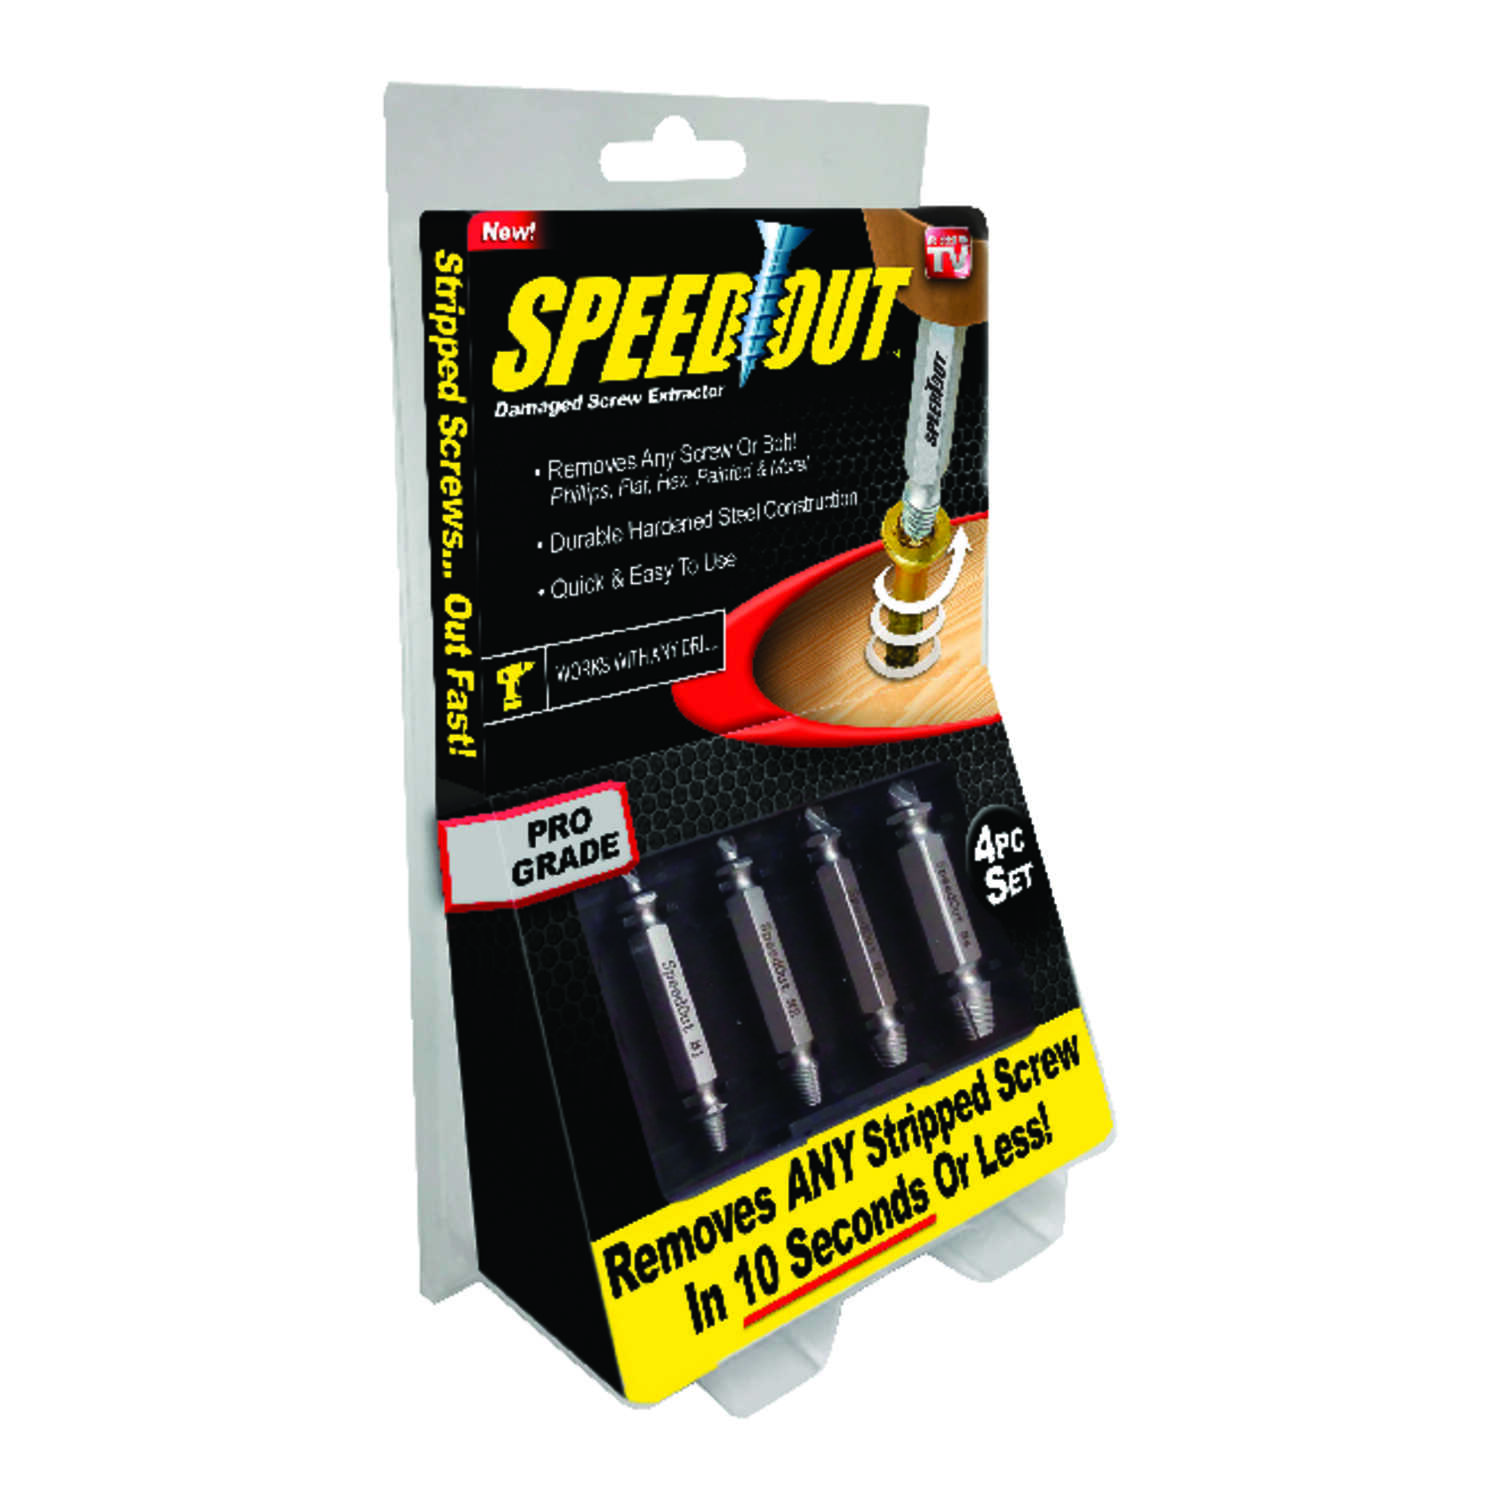 SpeedOut  Pro Grade  Multi Size   Steel  Screw Extractor  4 pc.